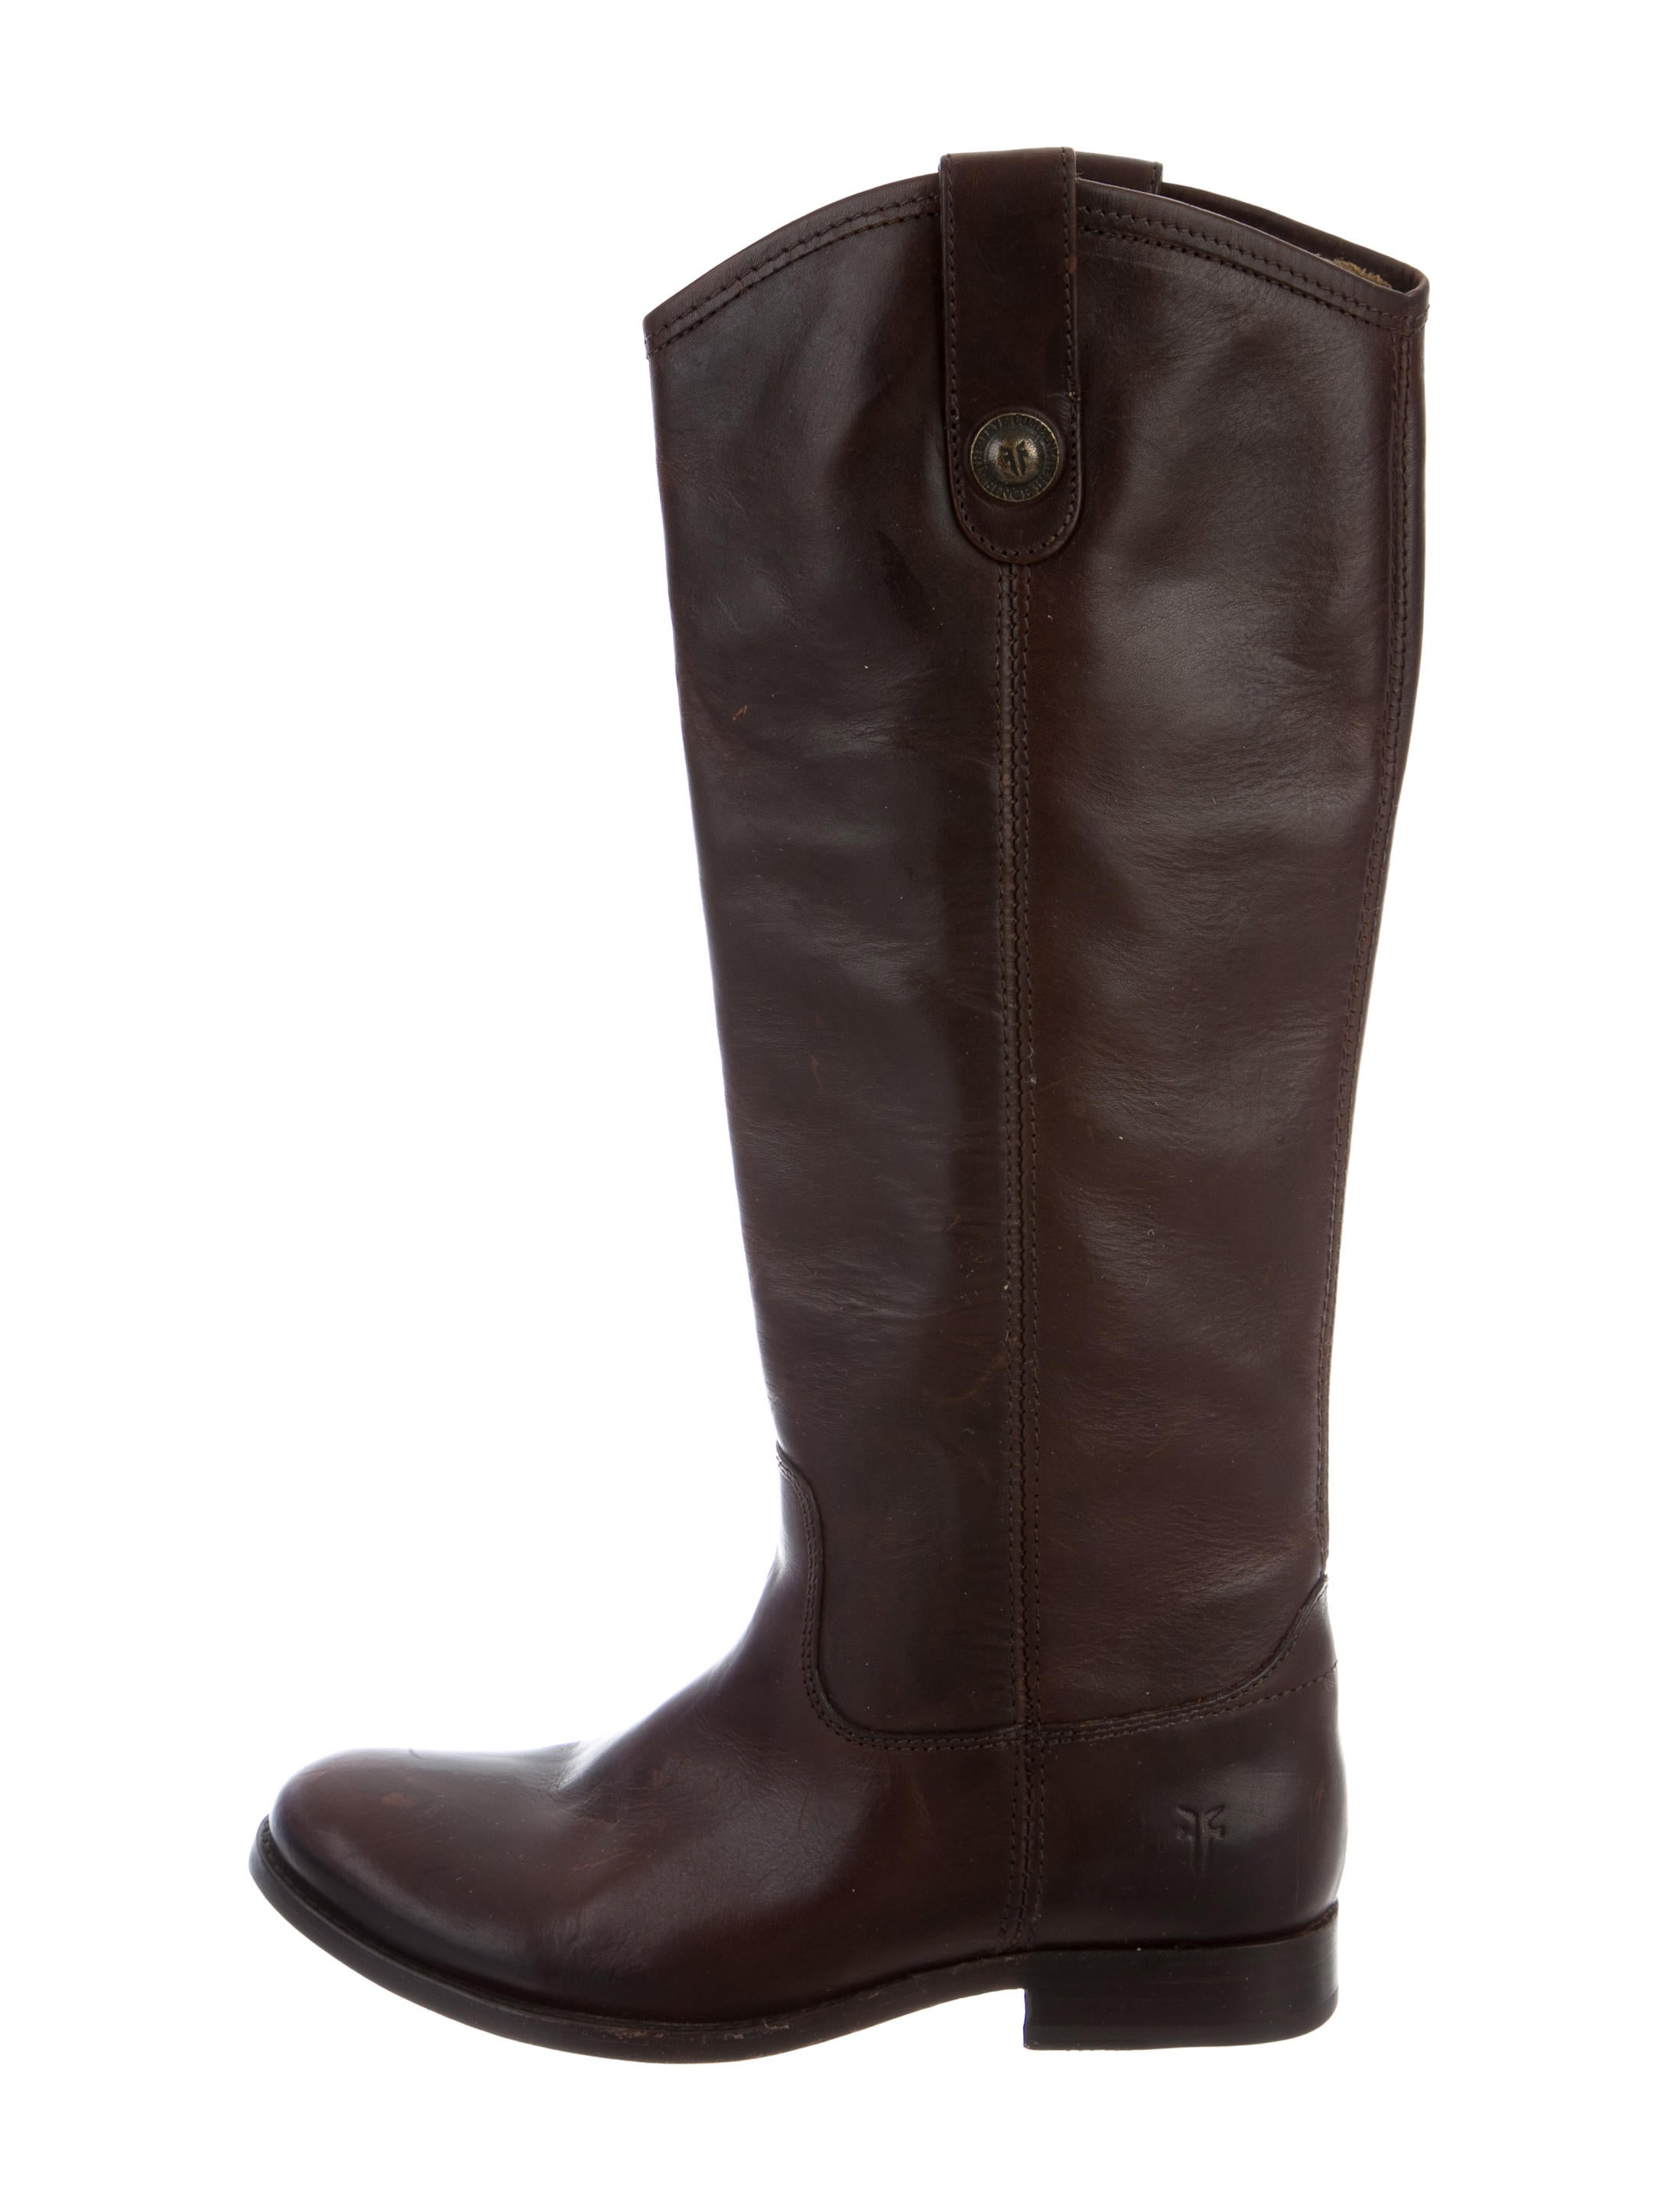 frye leather knee high boots shoes wf821215 the realreal